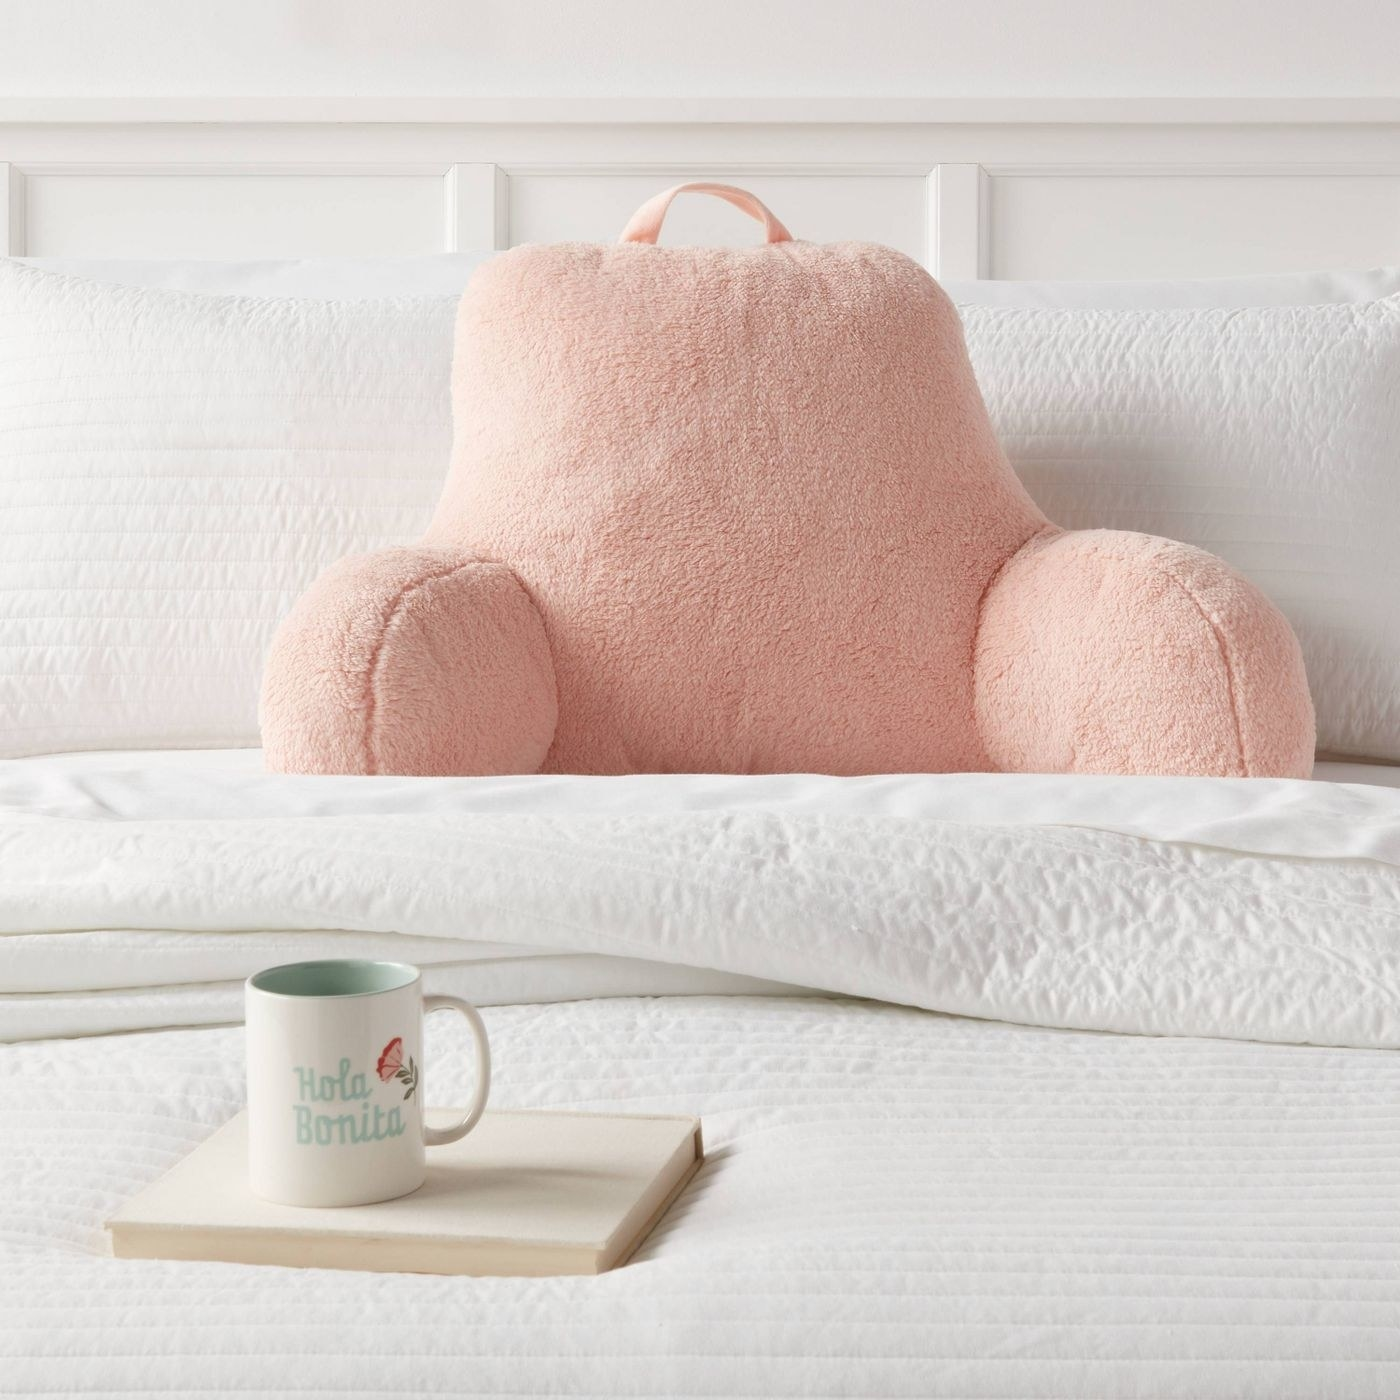 light pink bed rest pillow on a bed with white linens on it